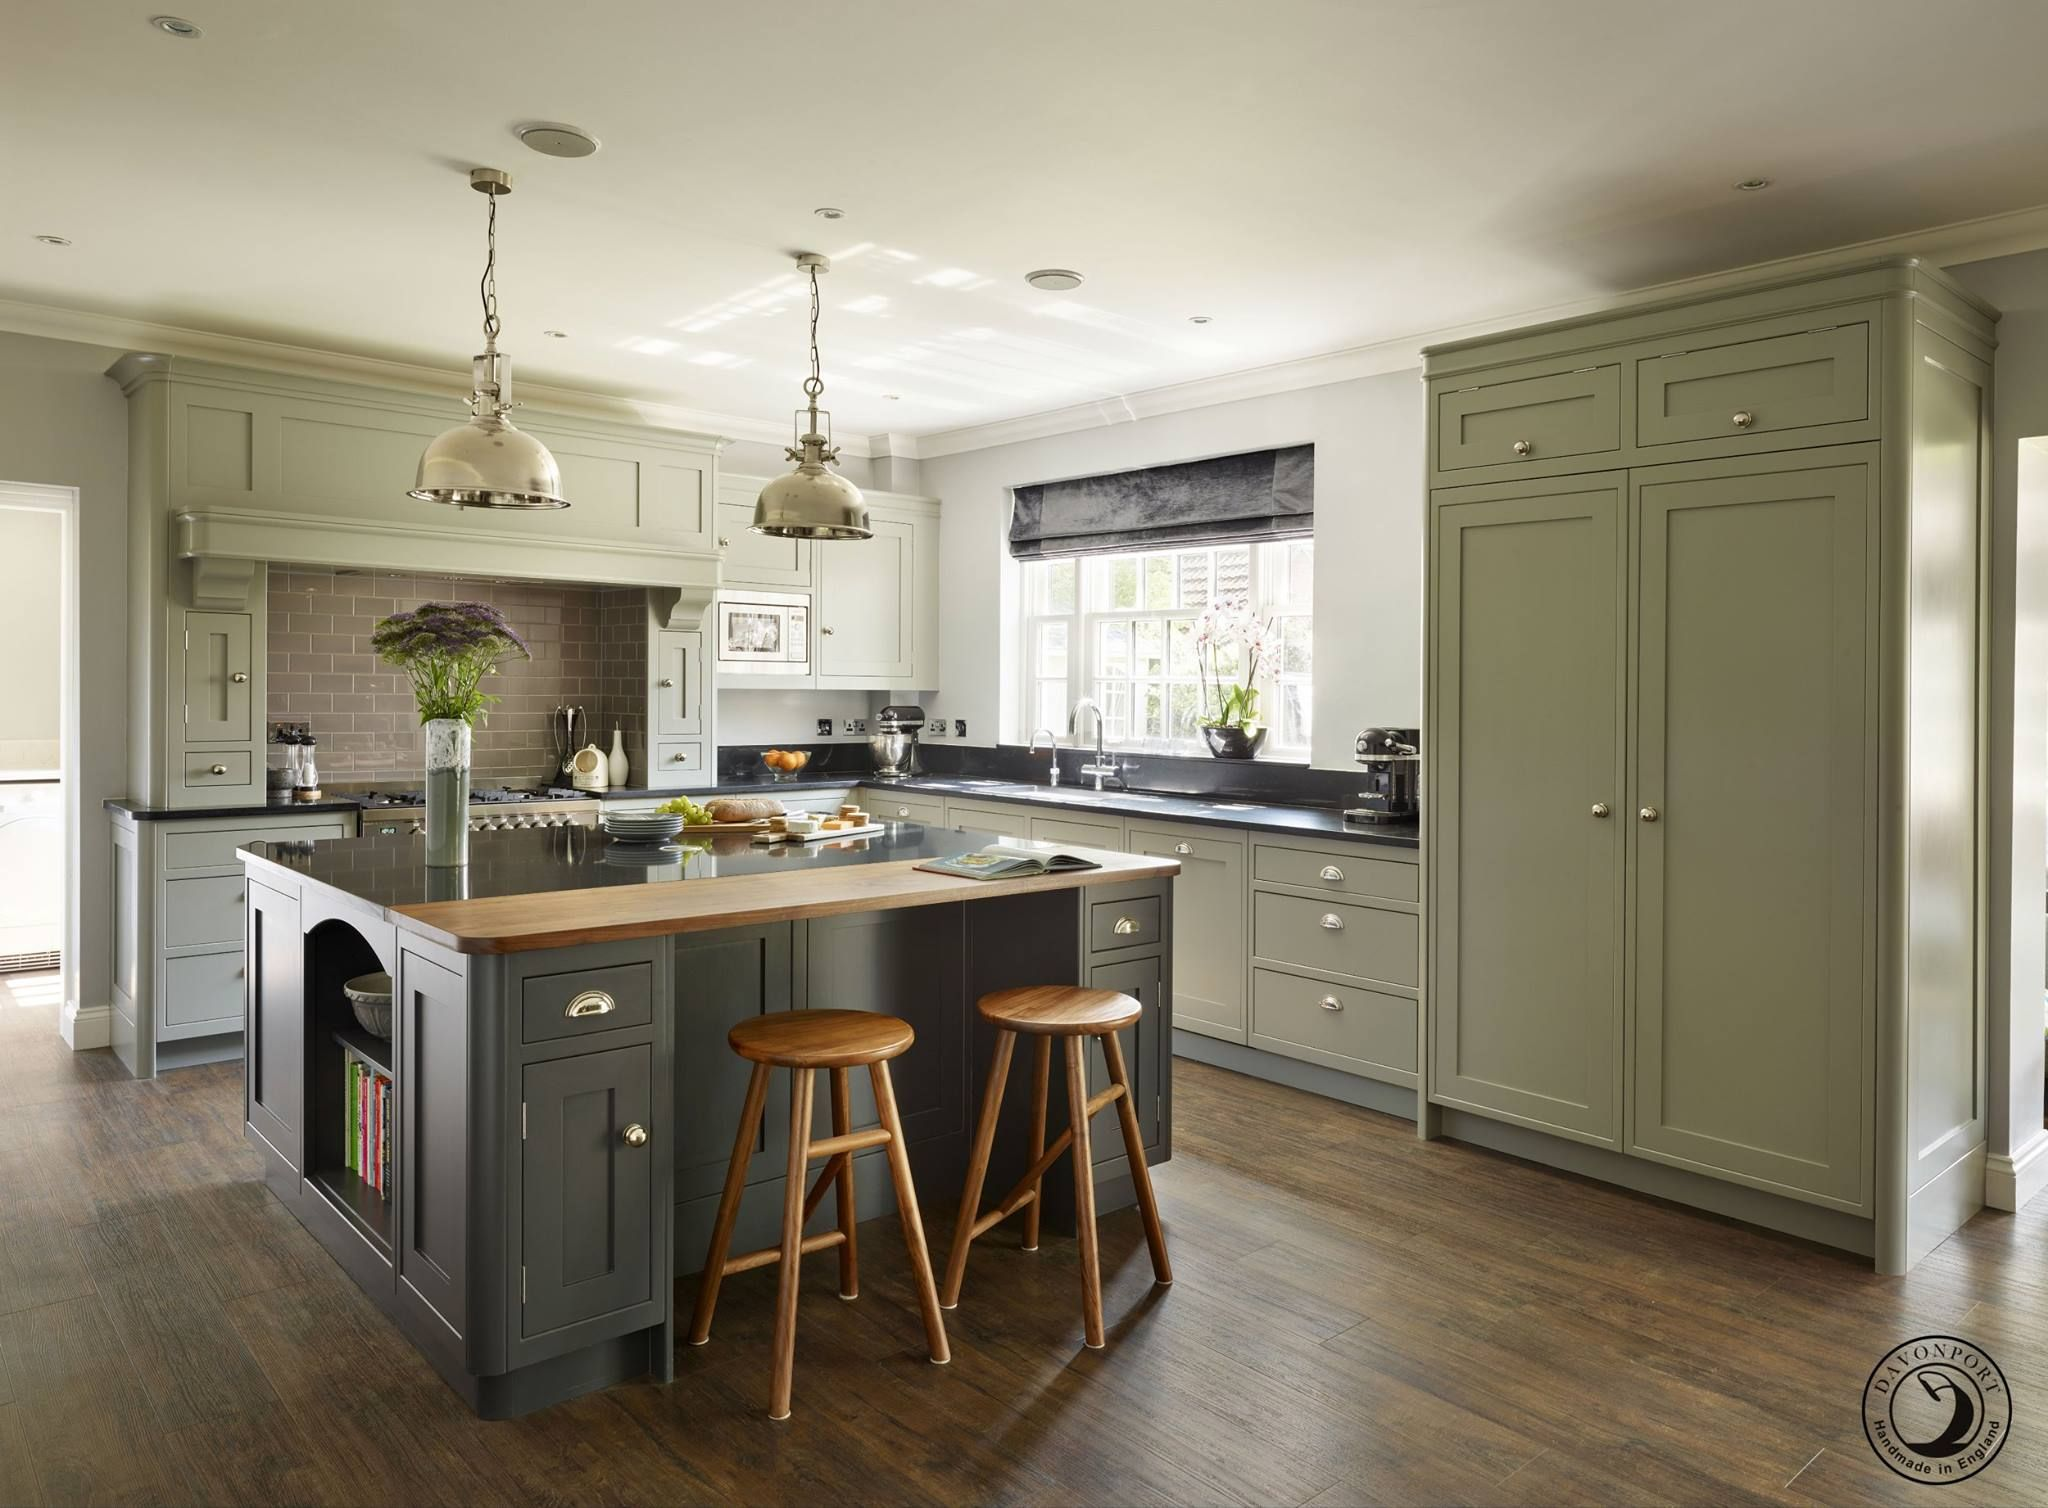 Modern Country kitchen in 2019 | Sage kitchen, Modern ...